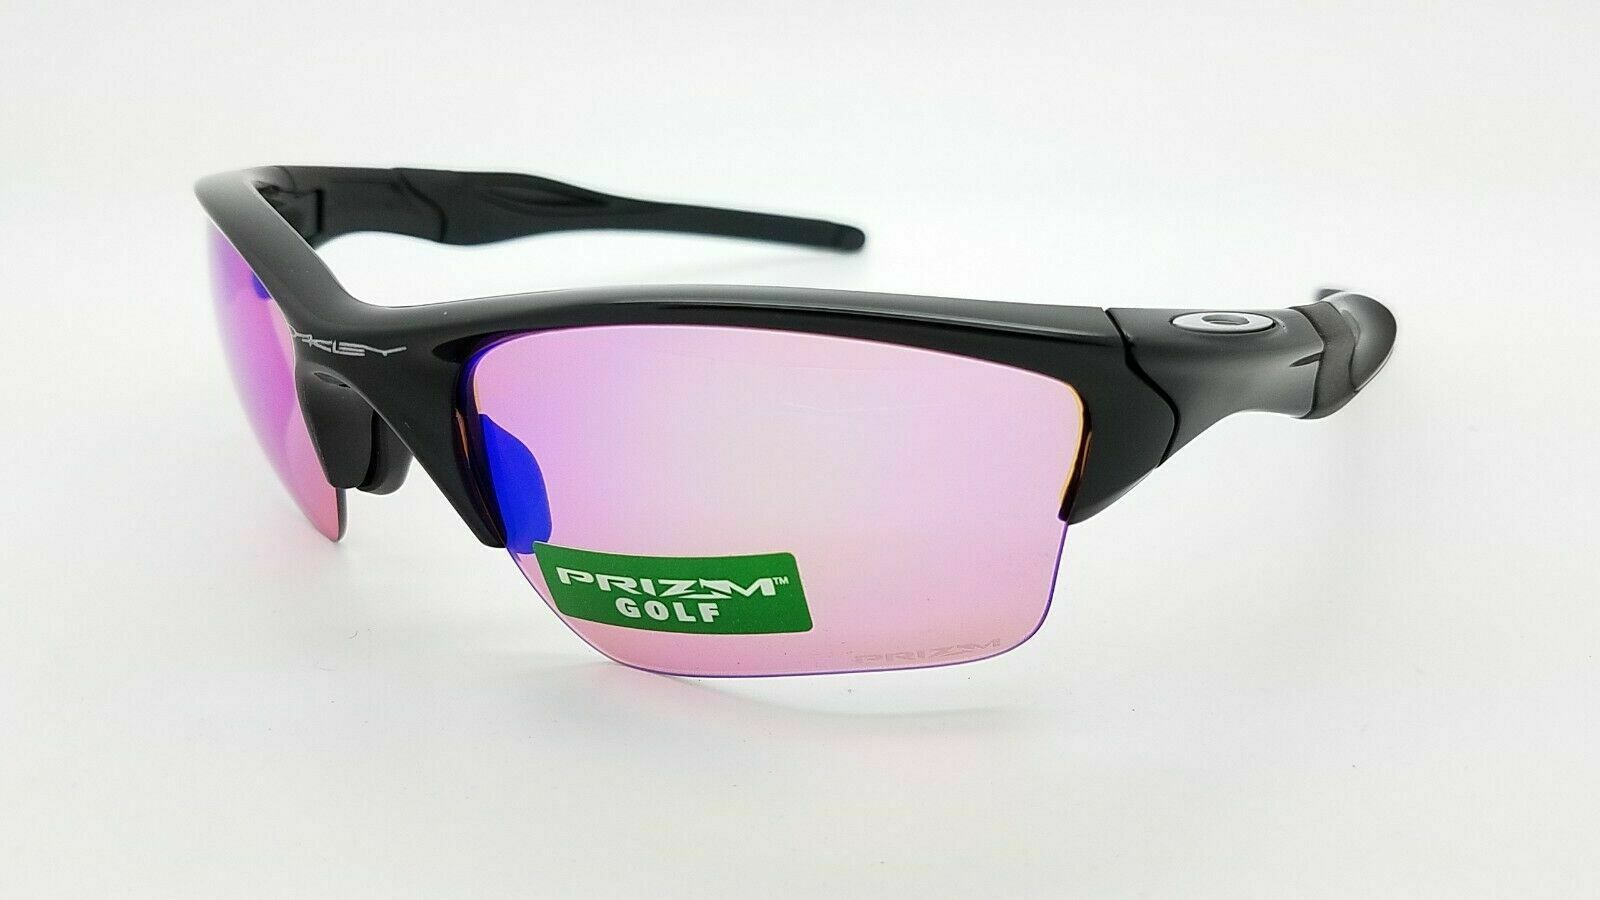 oakley-half-jacket-2-0-xl-sunglasses-oo9154-49-polished-black-w-prizm-golf-lens